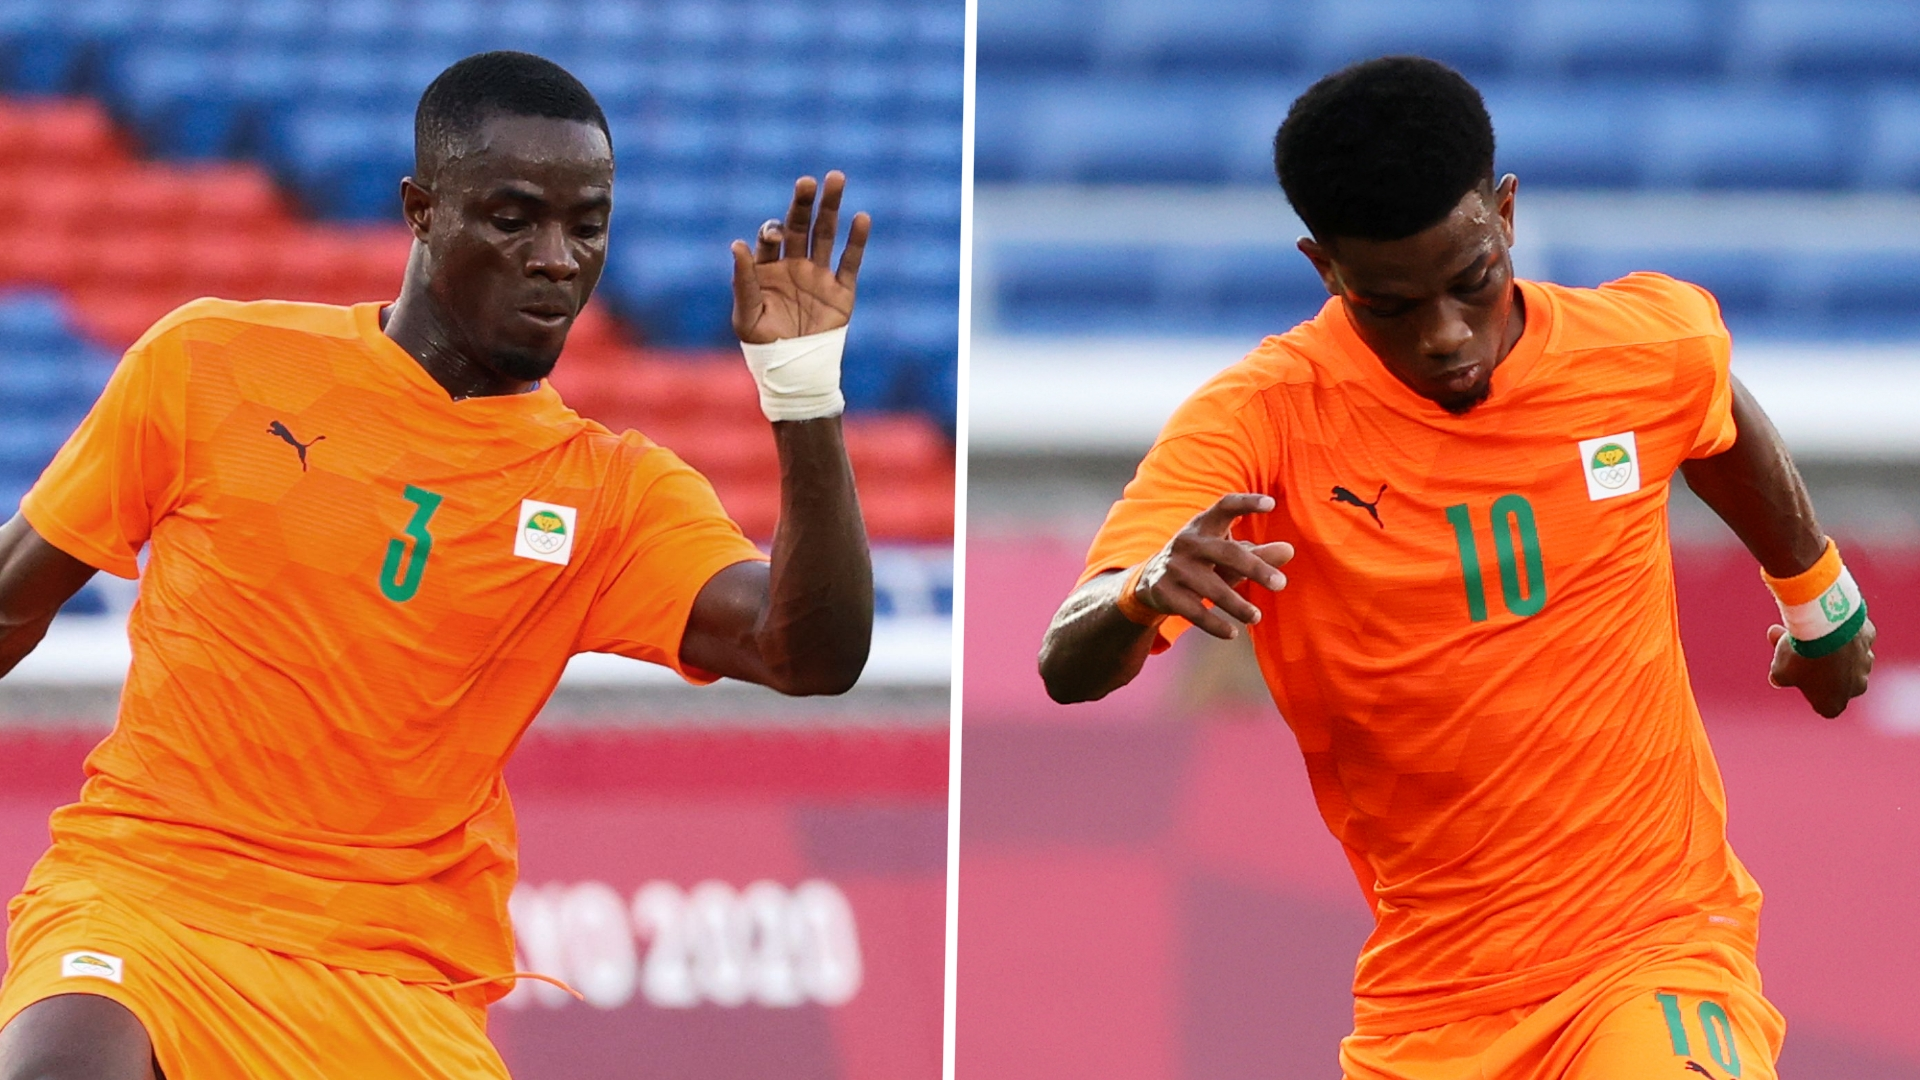 Bailly & Amad: Can Manchester United pair claim Olympic gold?